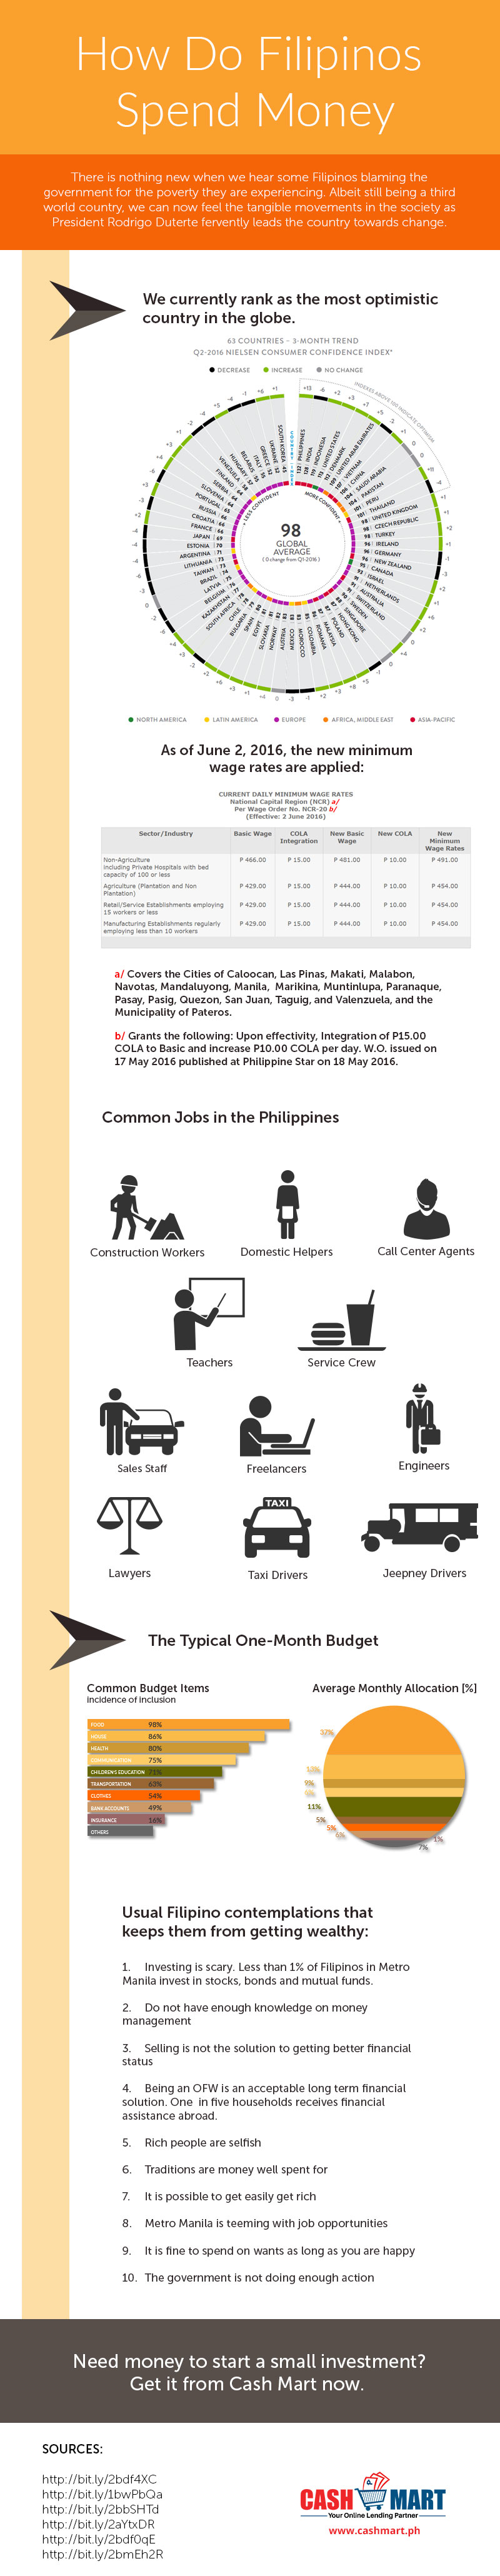 how-do-filipinos-spend-money